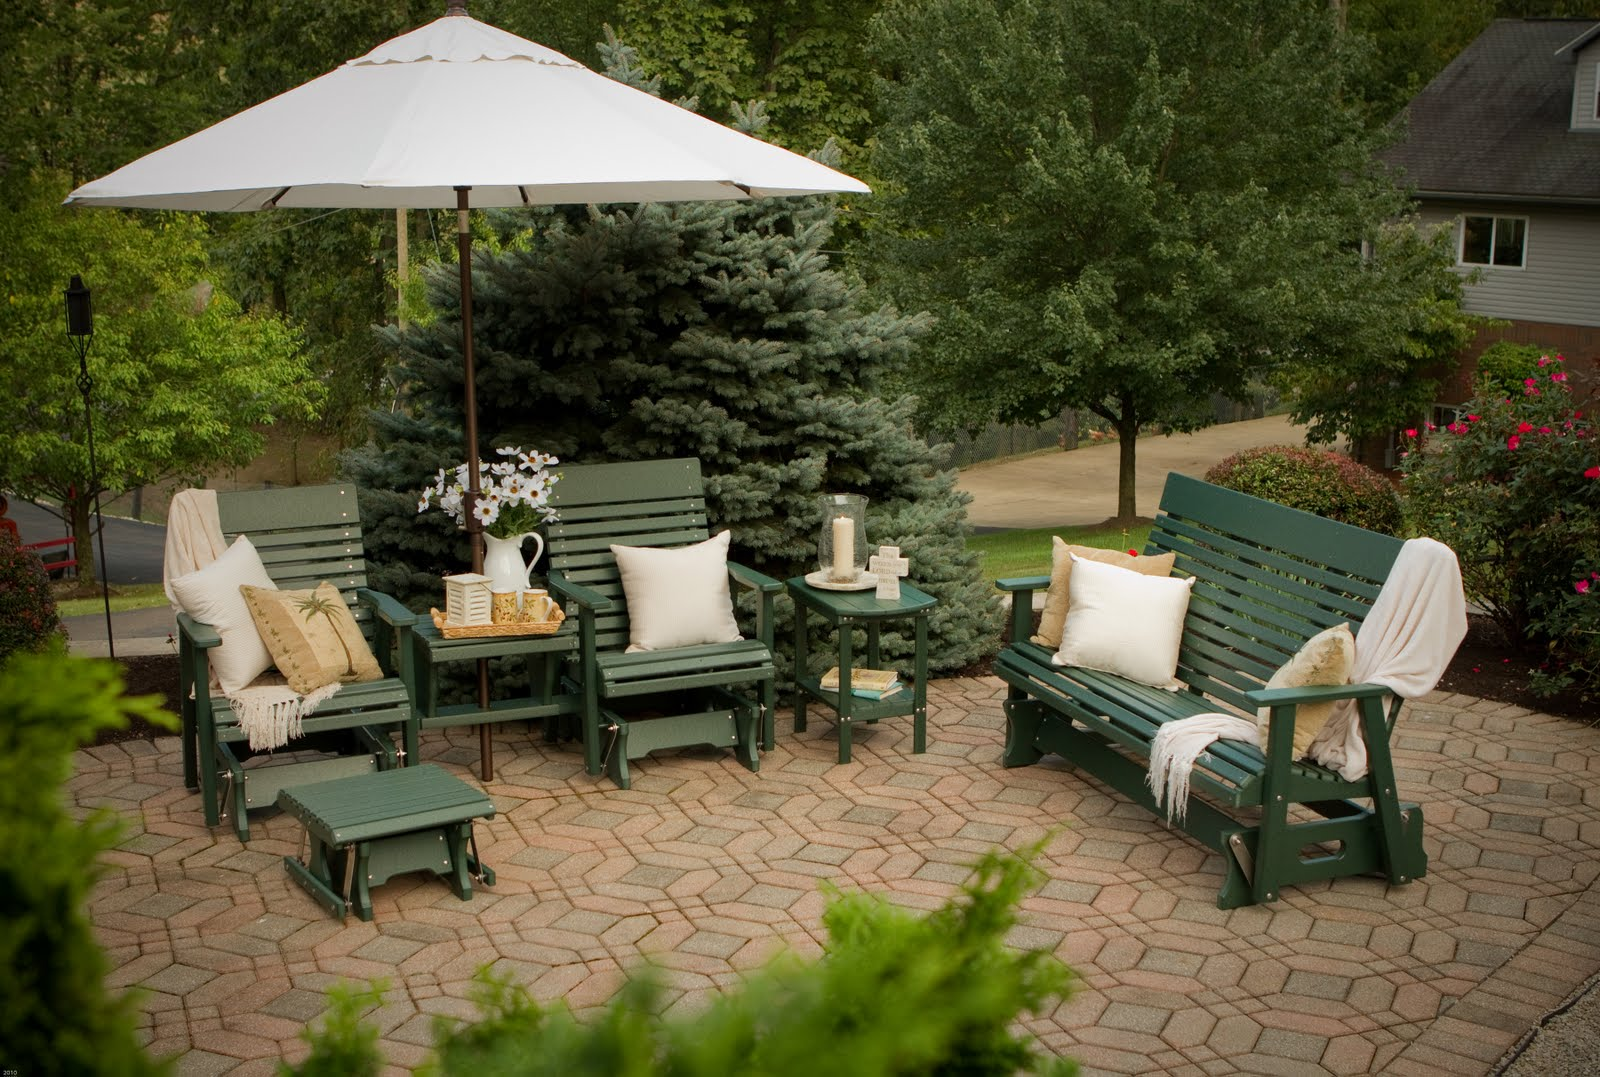 cedar outdoor furniture inc outdoor fun the recycle story from plastic milk jugs to beautiful outdoor furniture